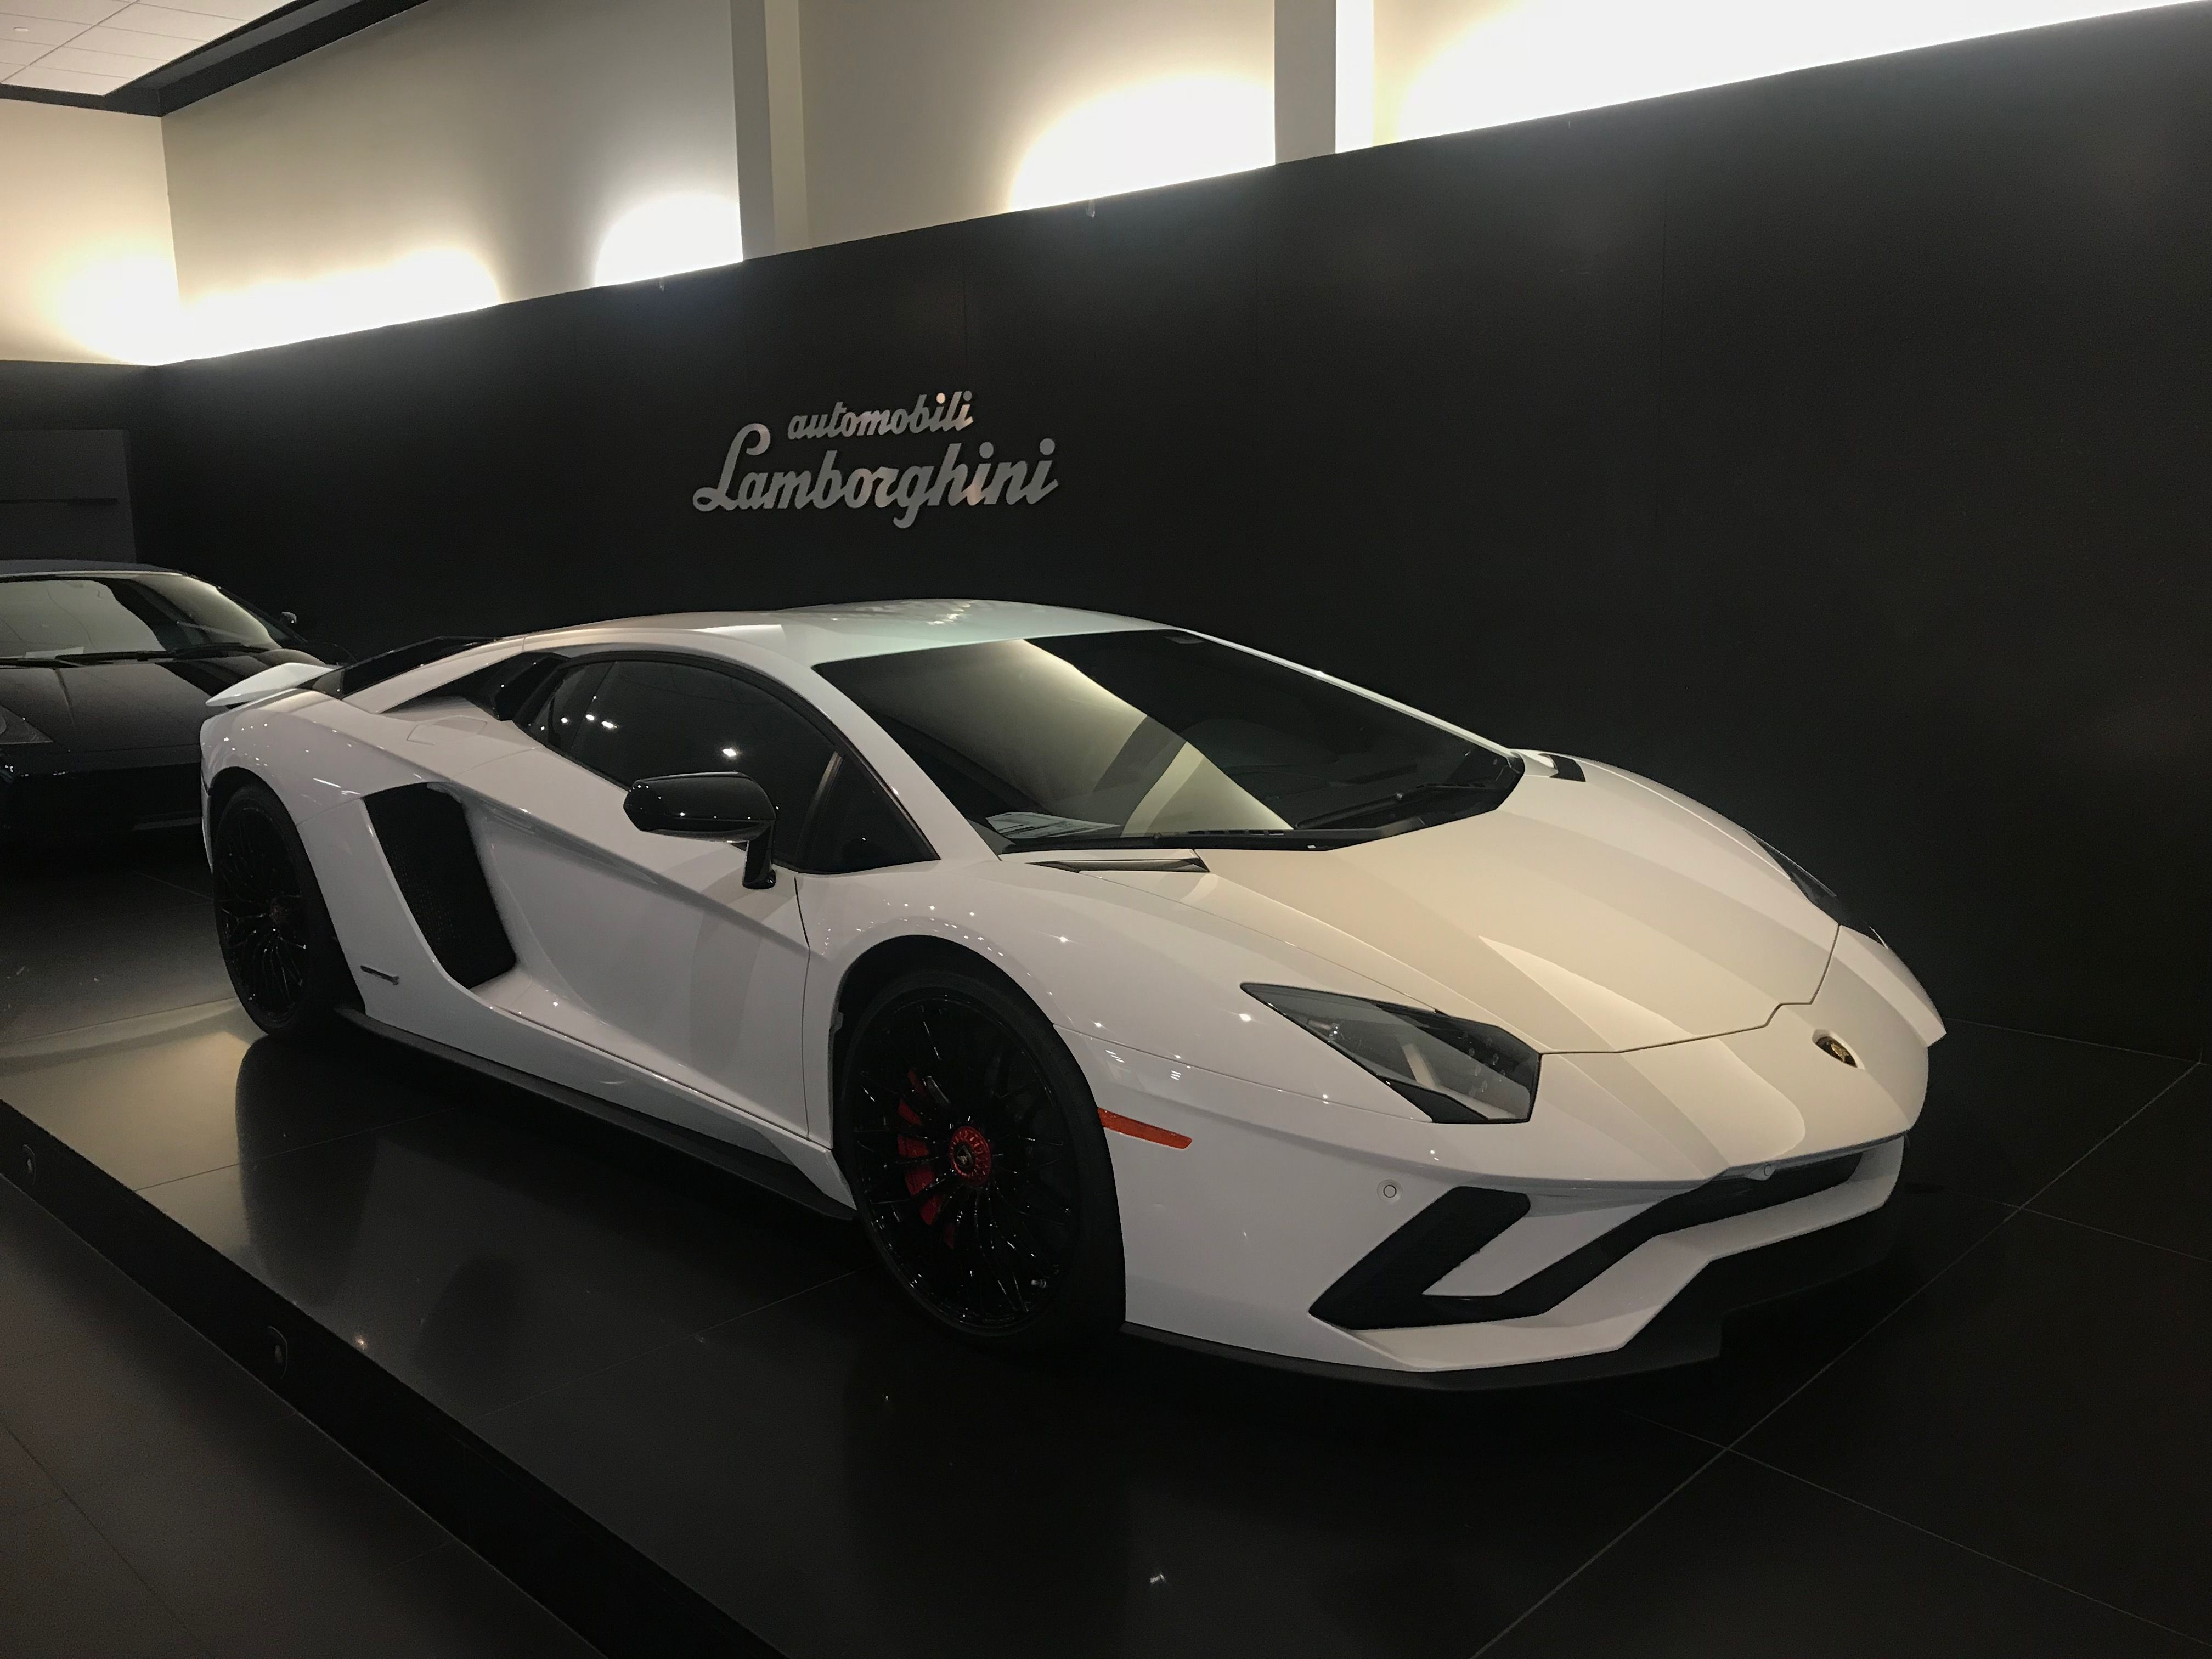 Lamborghini Aventador S Painted In Bianco Isis Photo Taken By Me